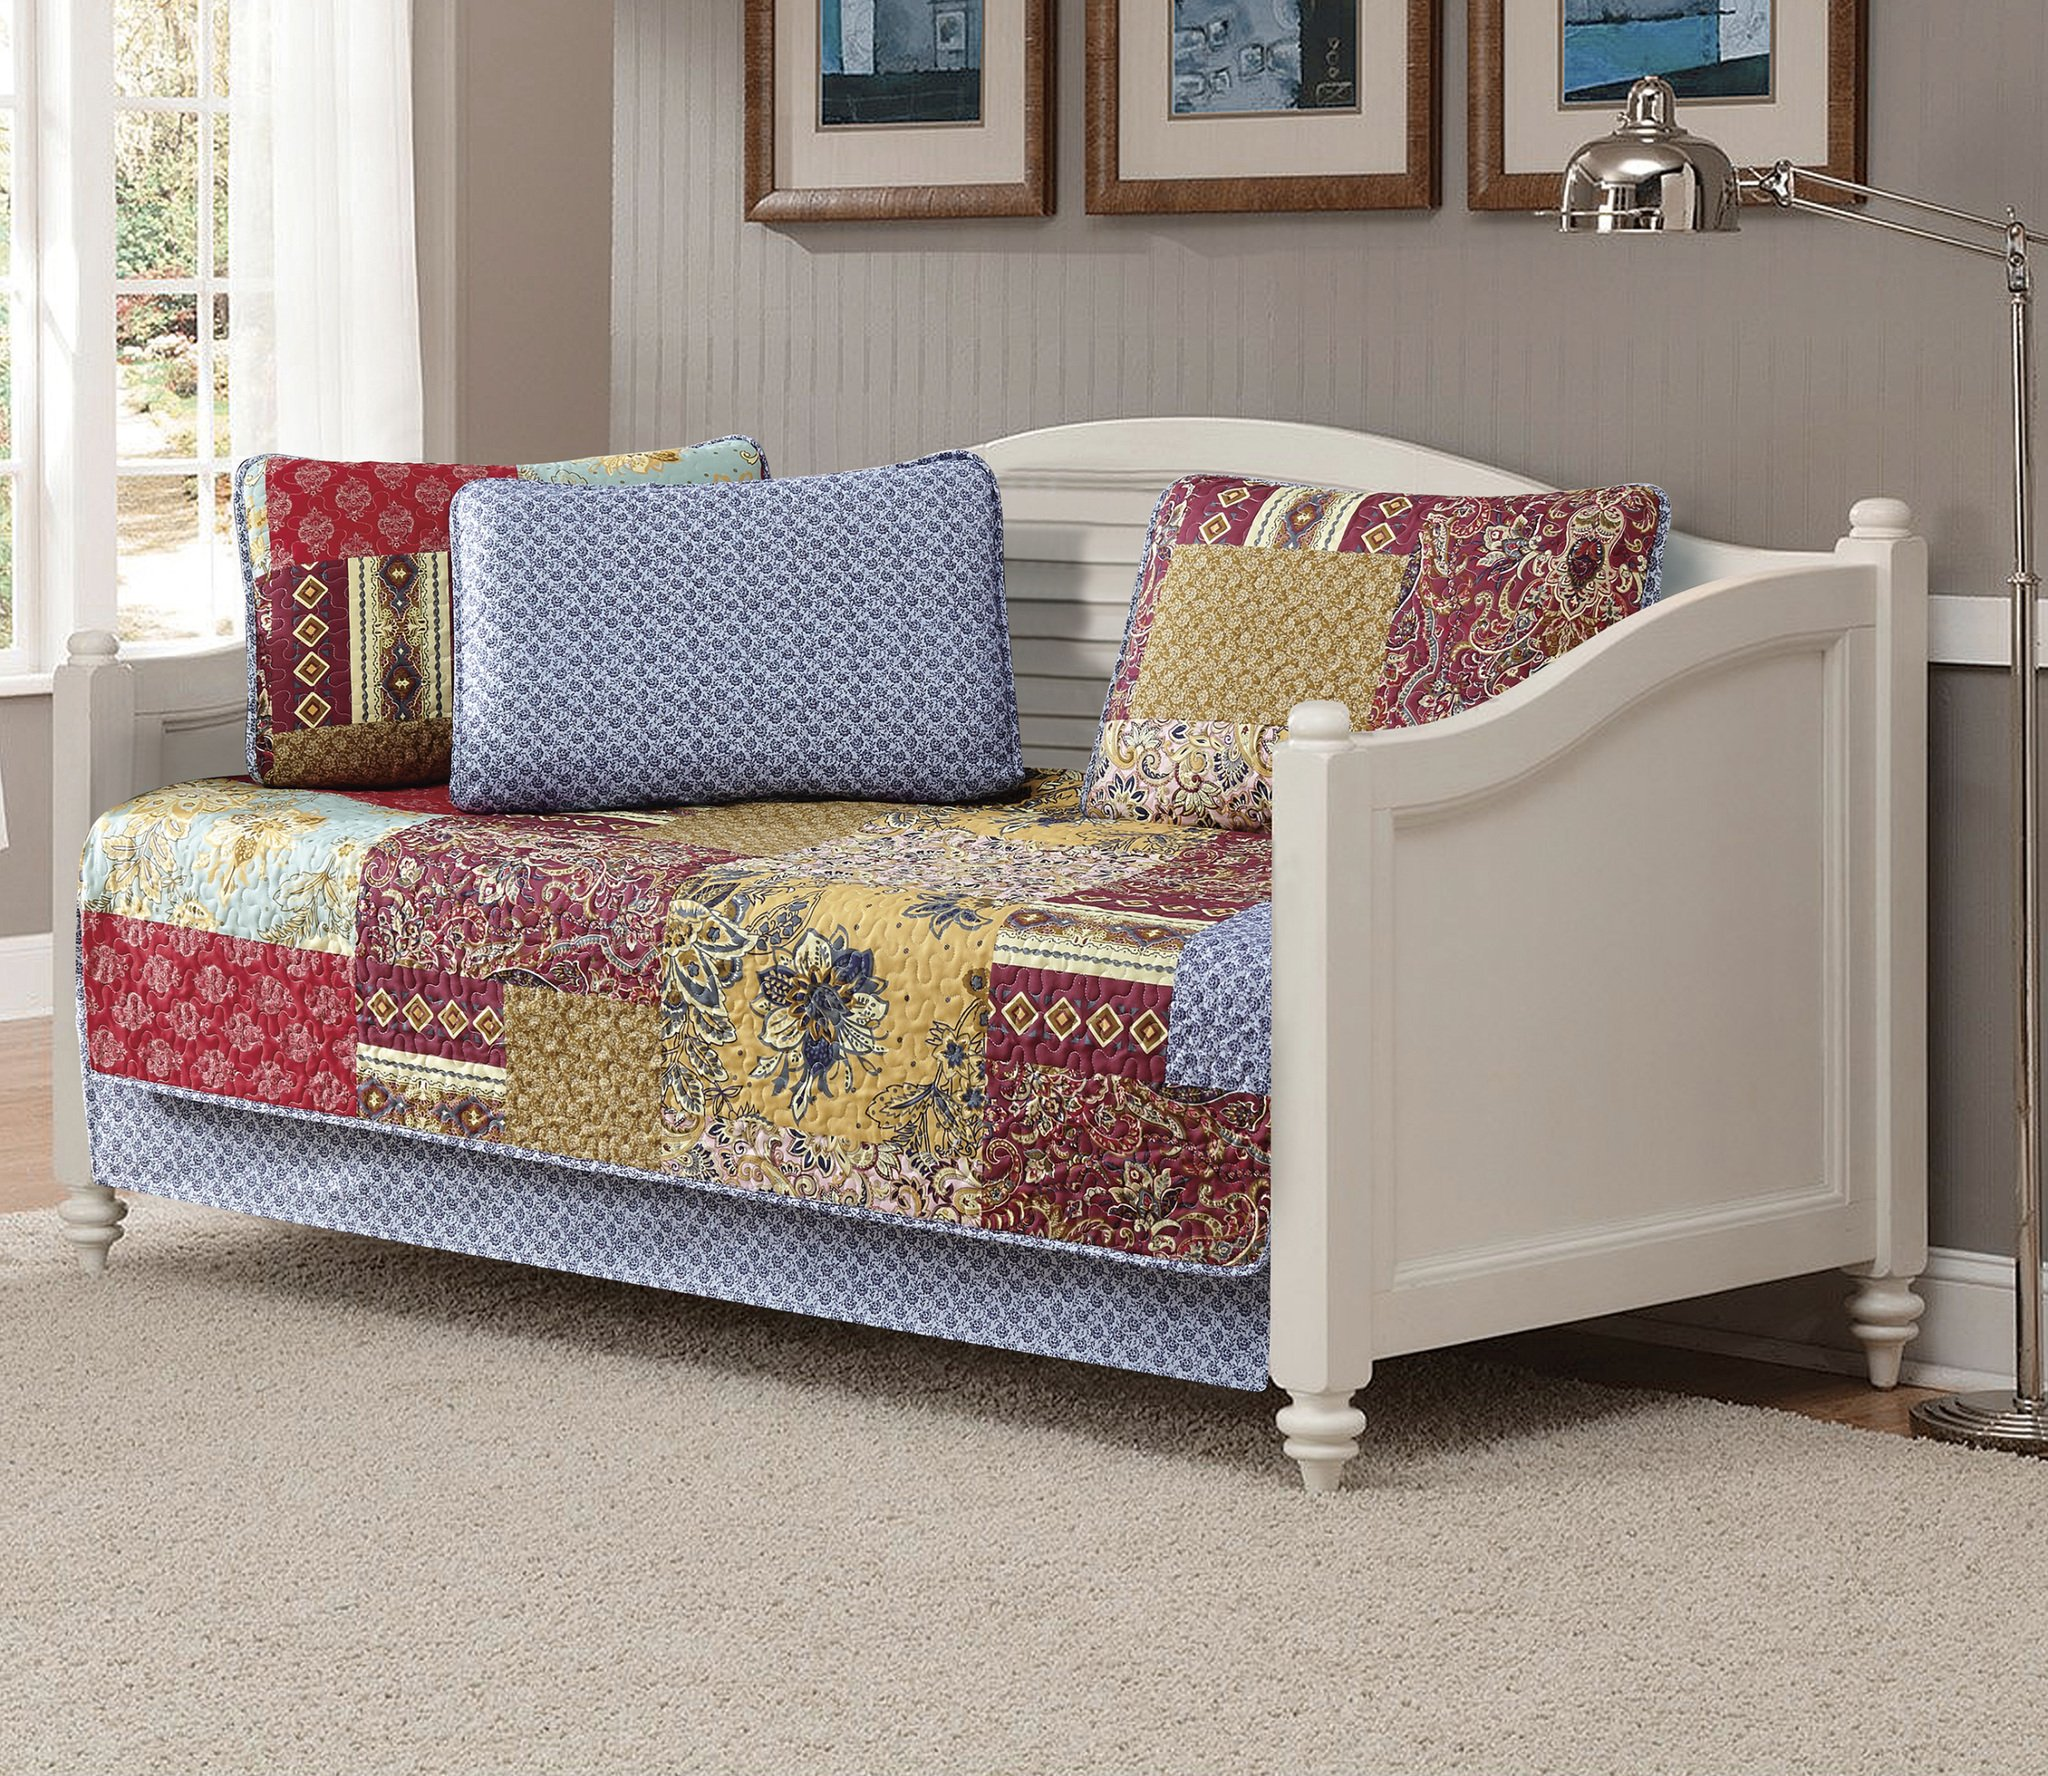 Fancy Linen 5pc Daybed Quilt Bedspread Set Bed Cover Squares Floral Taupe Red Burgundy Navy Blue New